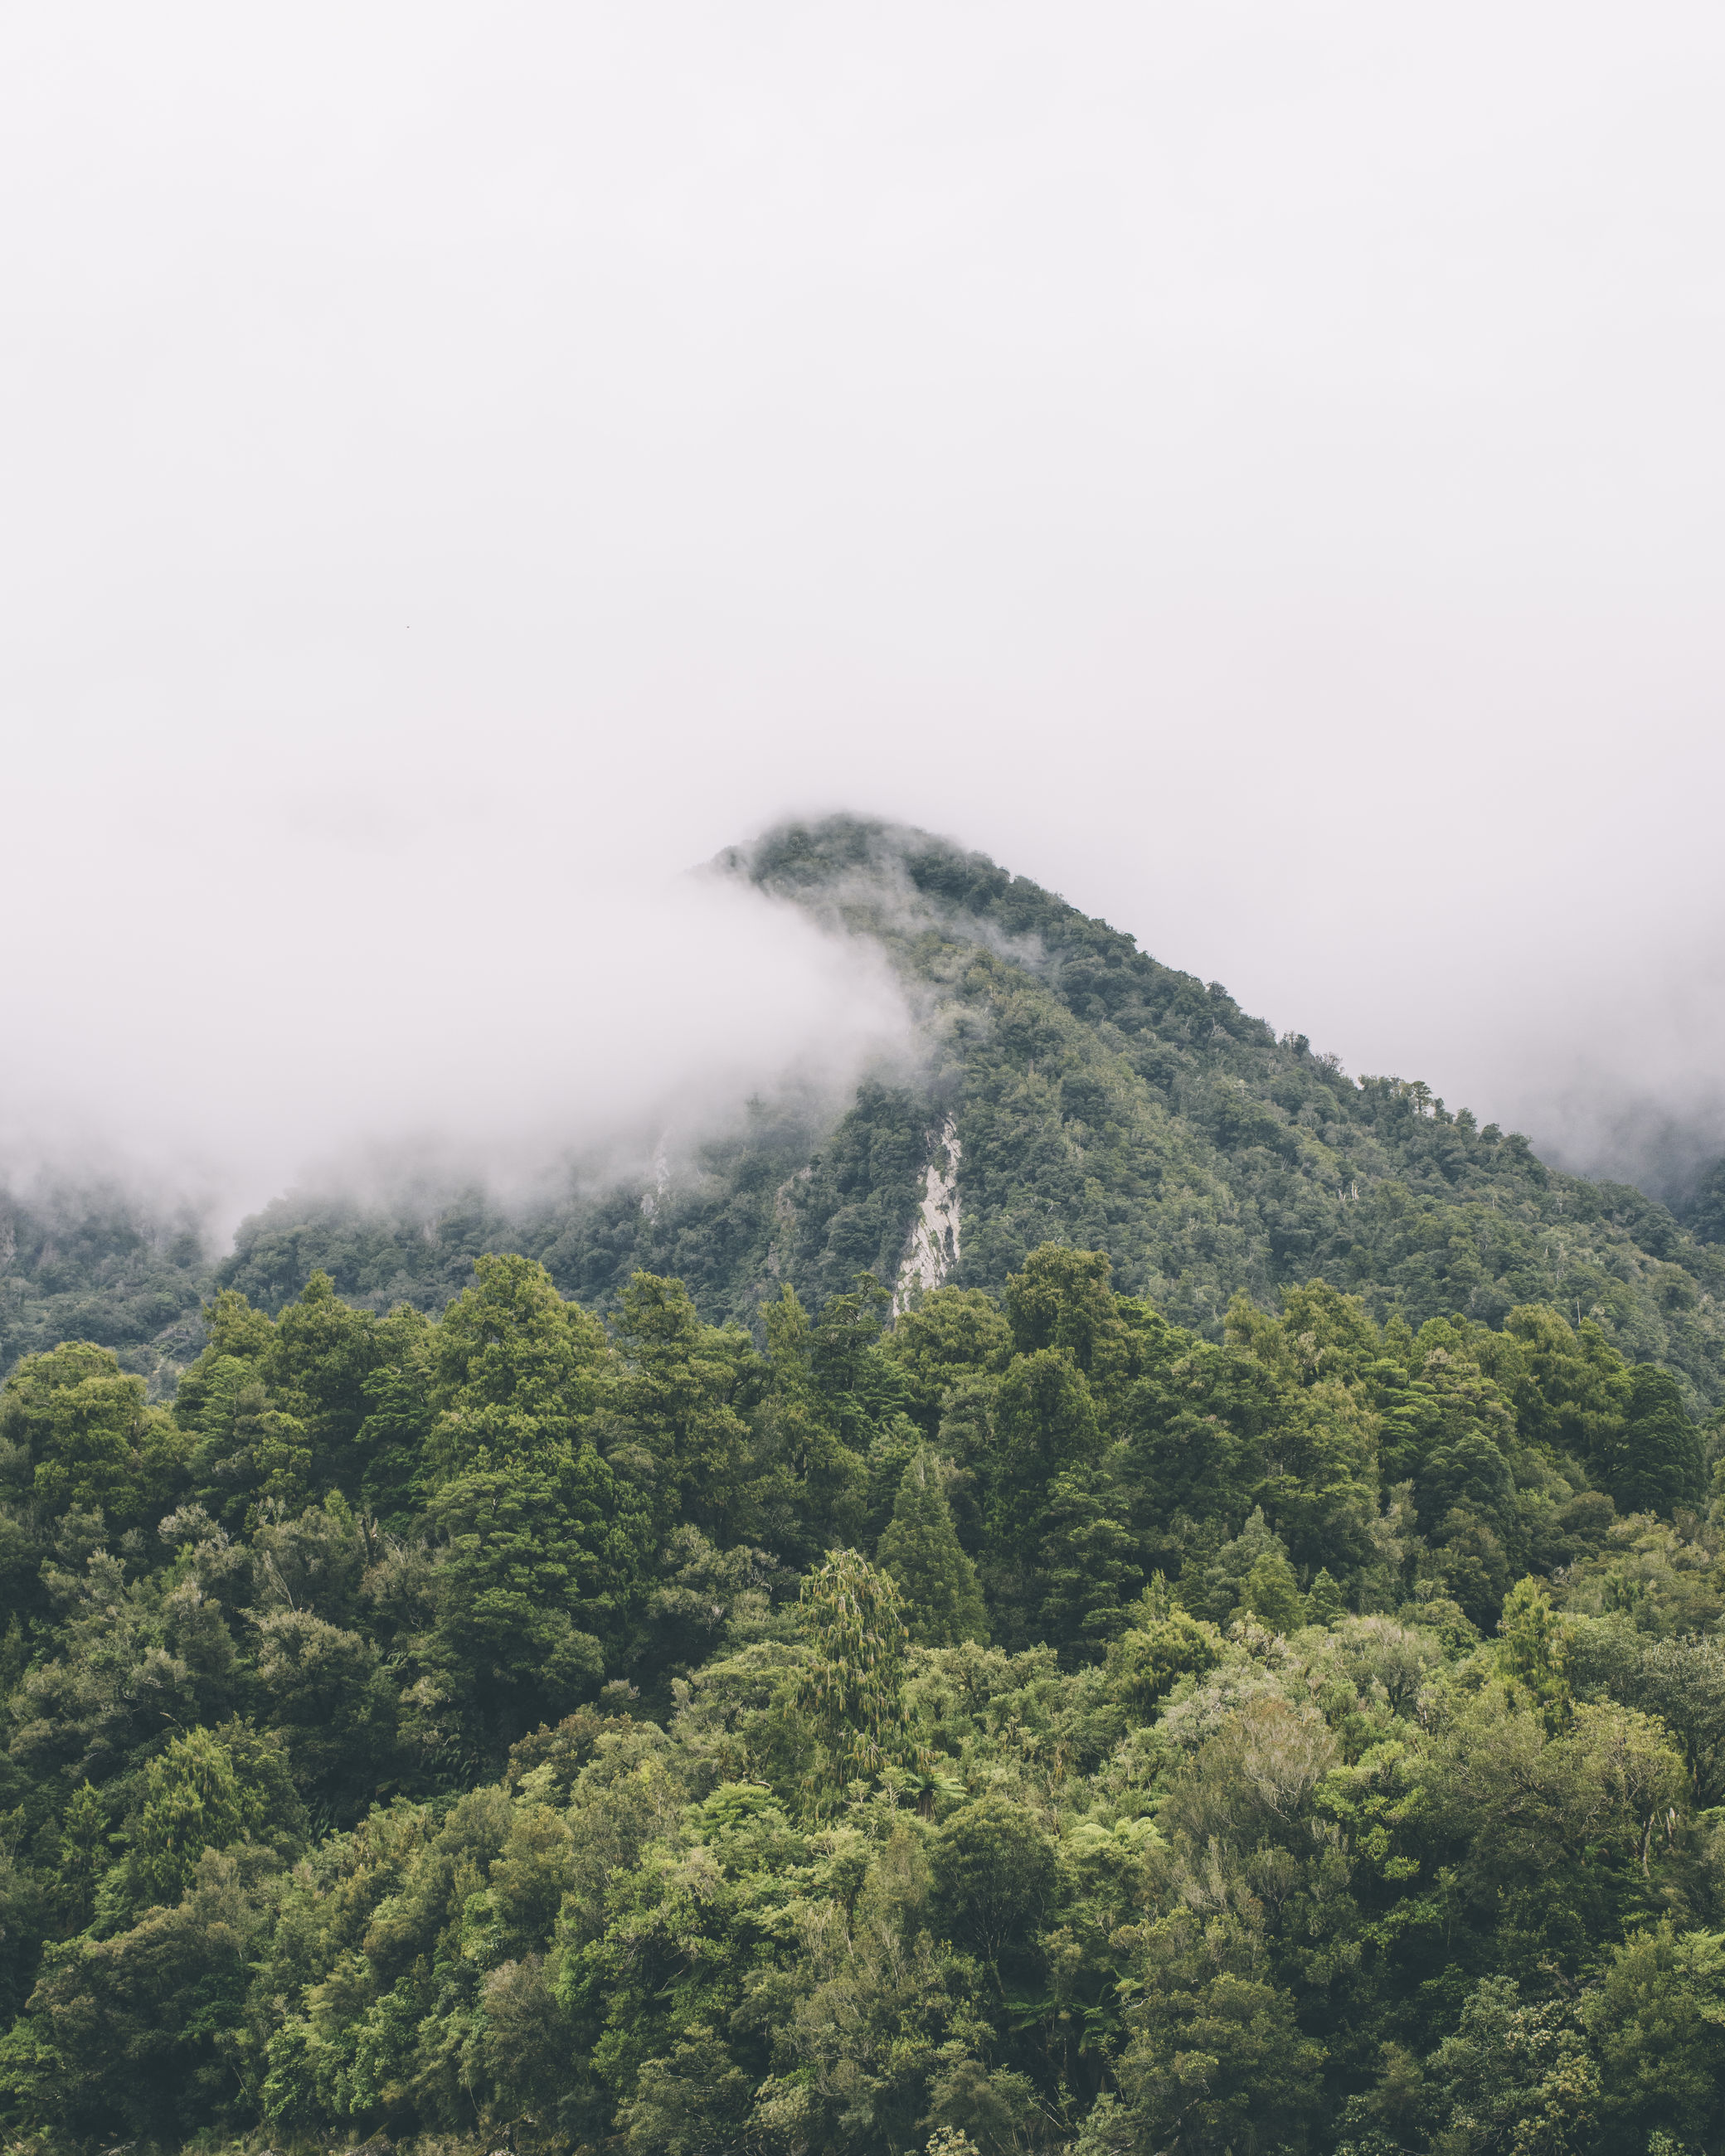 fog, foggy, tranquil scene, tranquility, scenics, beauty in nature, mountain, tree, nature, weather, landscape, growth, copy space, non-urban scene, idyllic, sky, green color, high angle view, mist